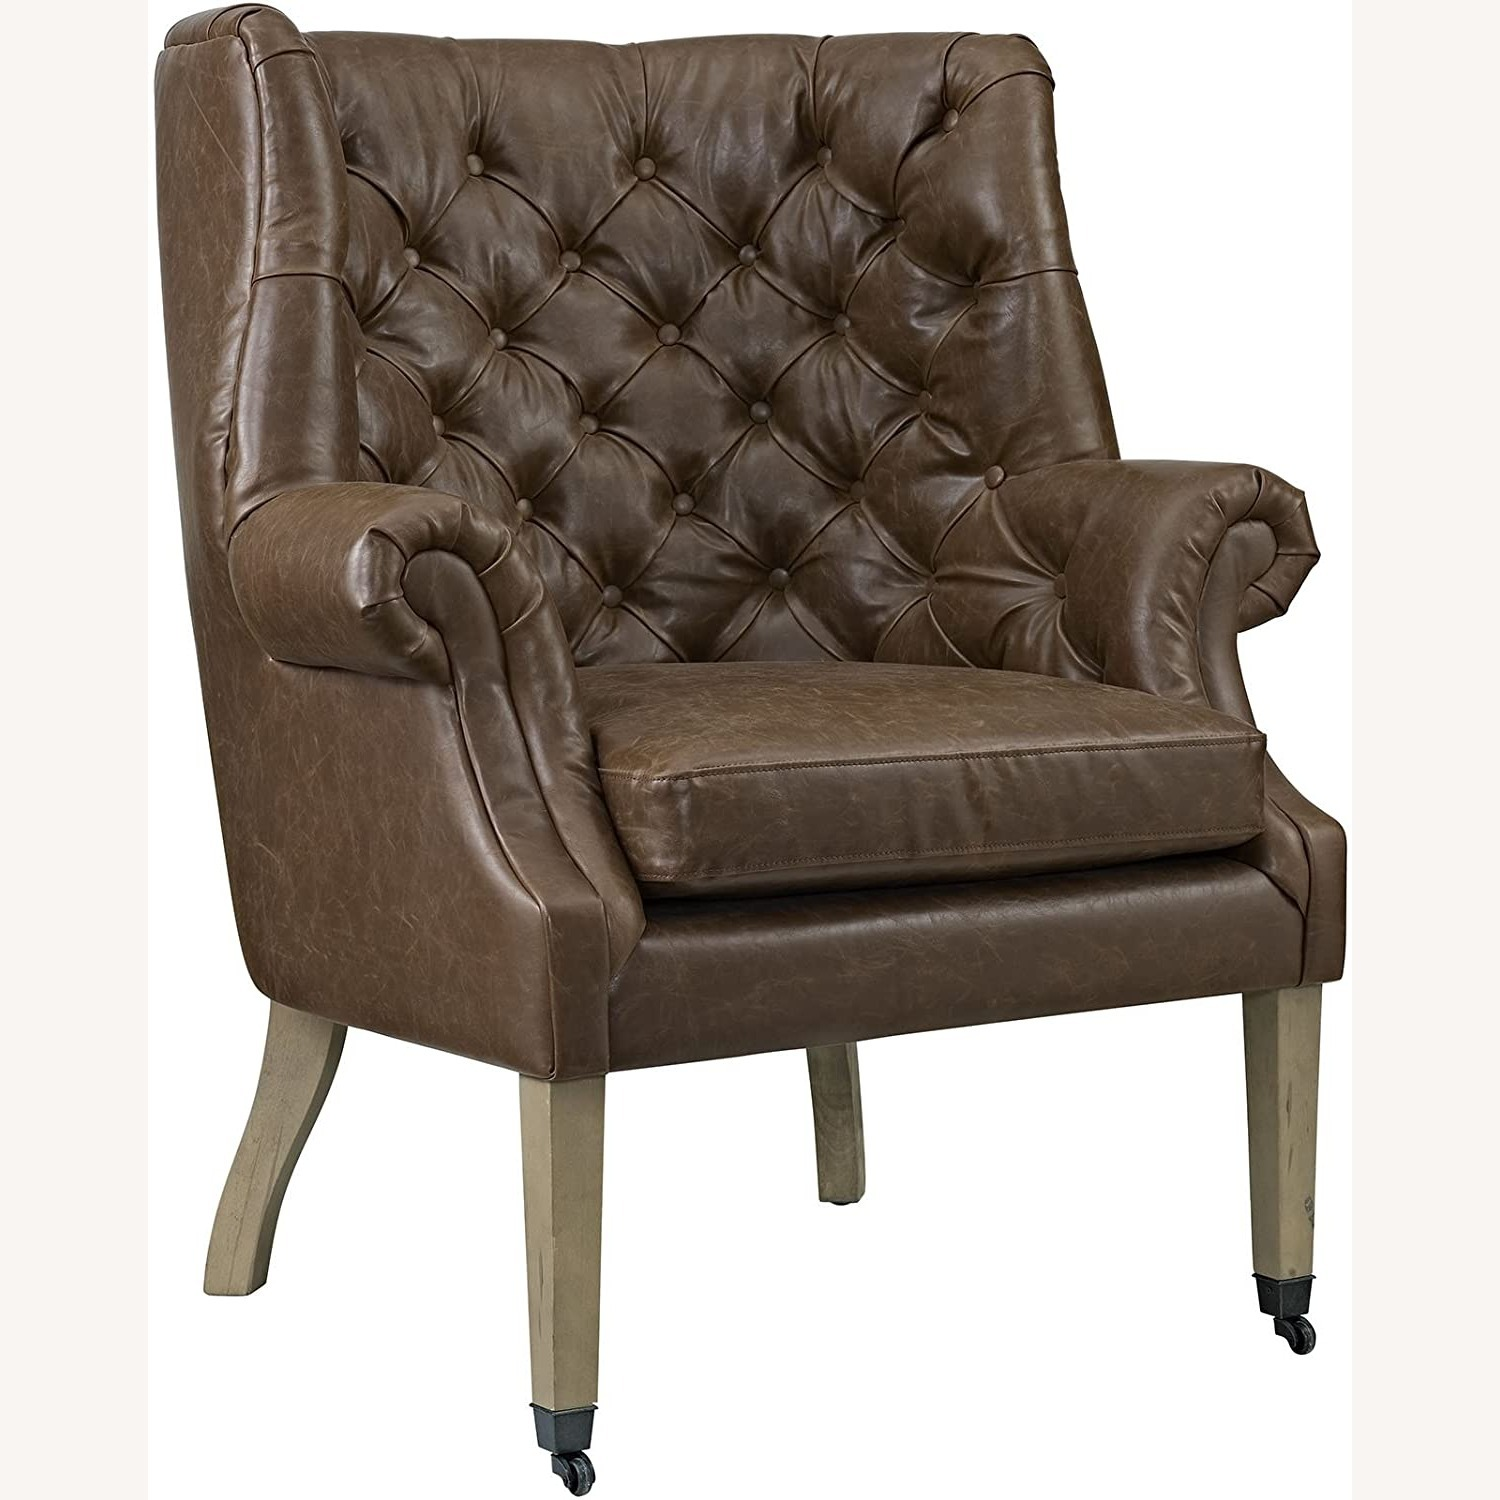 Accent Chair In Brown Vinyl Upholstery Finish - image-0